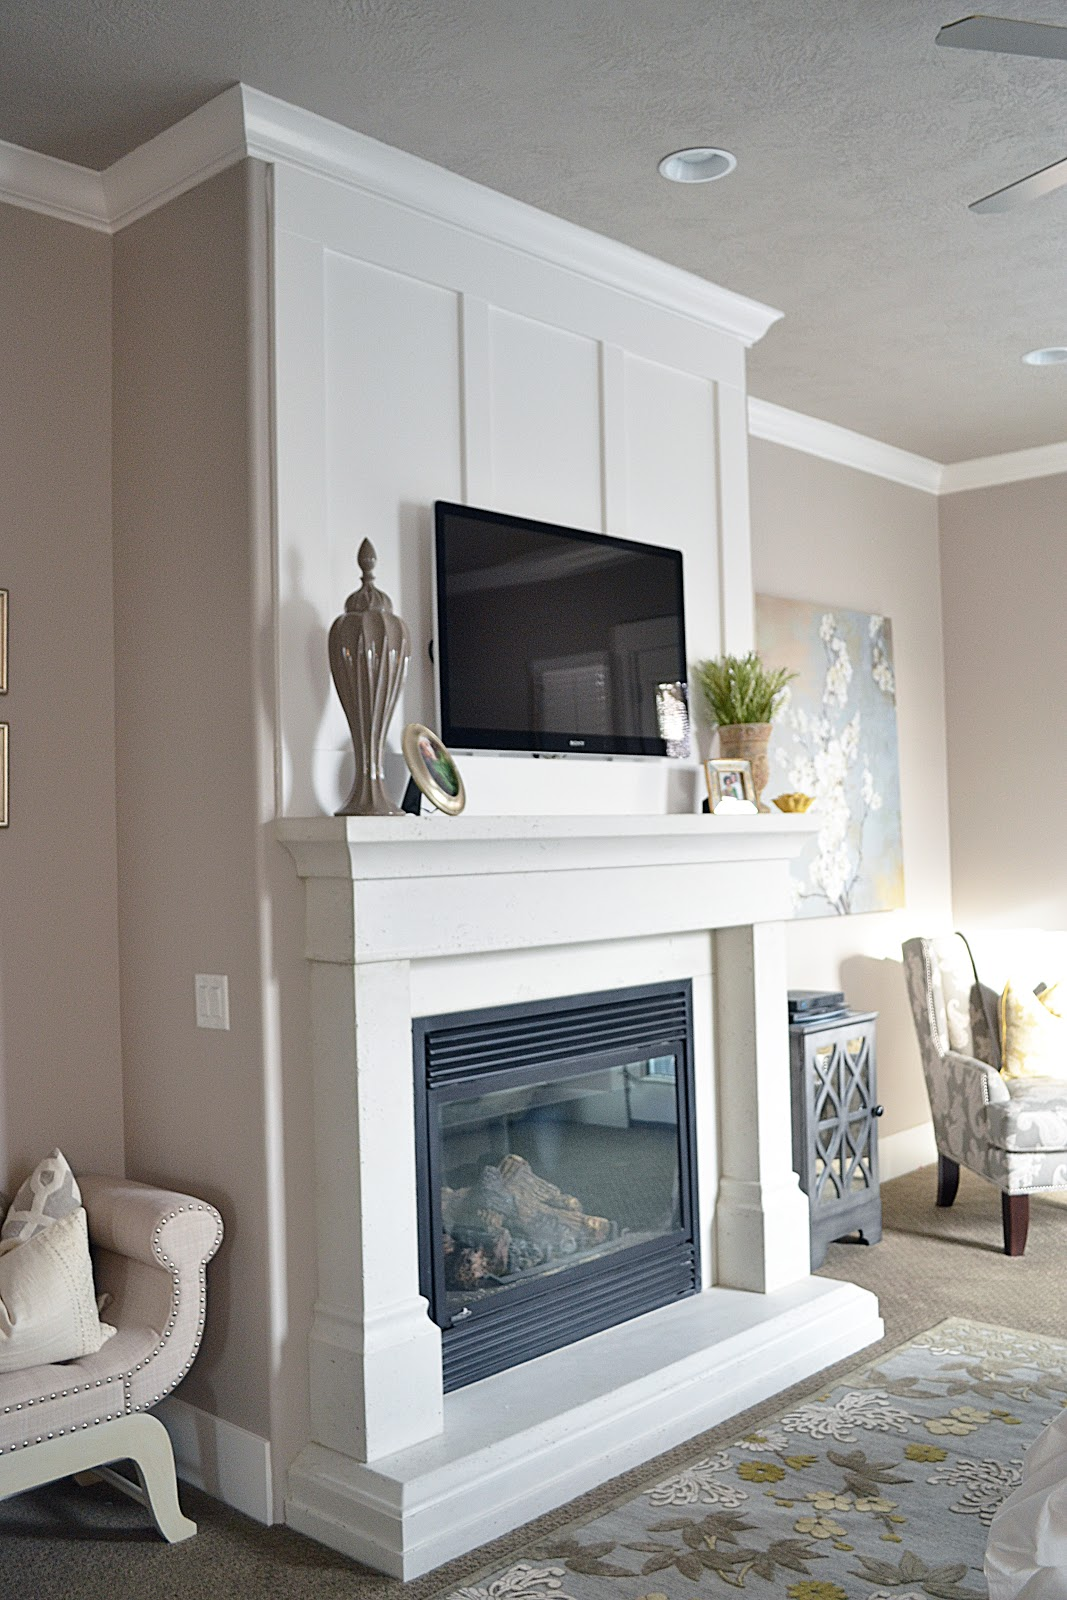 how to design living room with fireplace and tv bench sita montgomery interiors: master bedroom ...